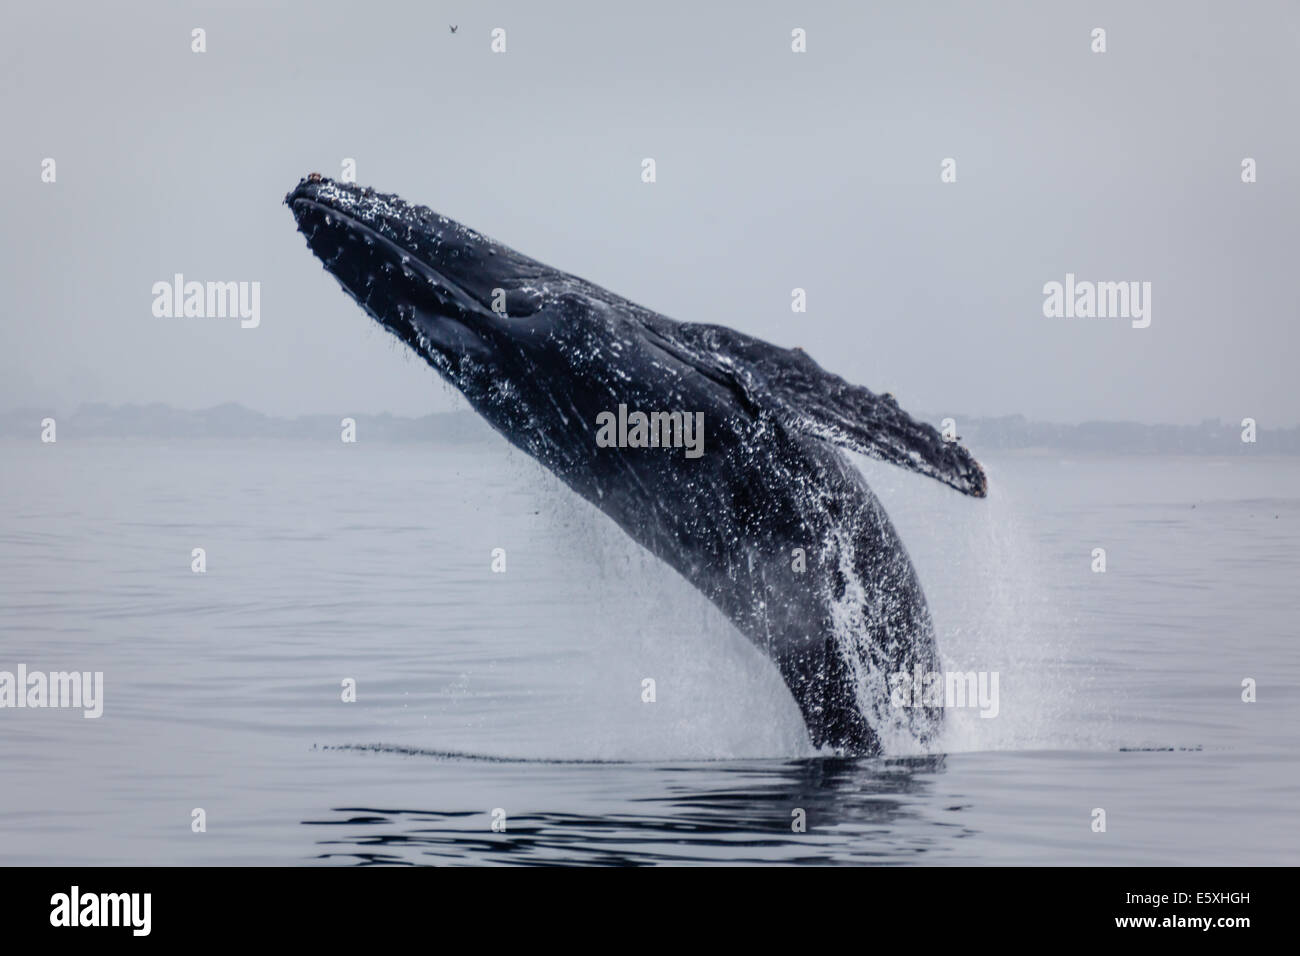 Close-up of humpback whale breaching high out of the water - Stock Image